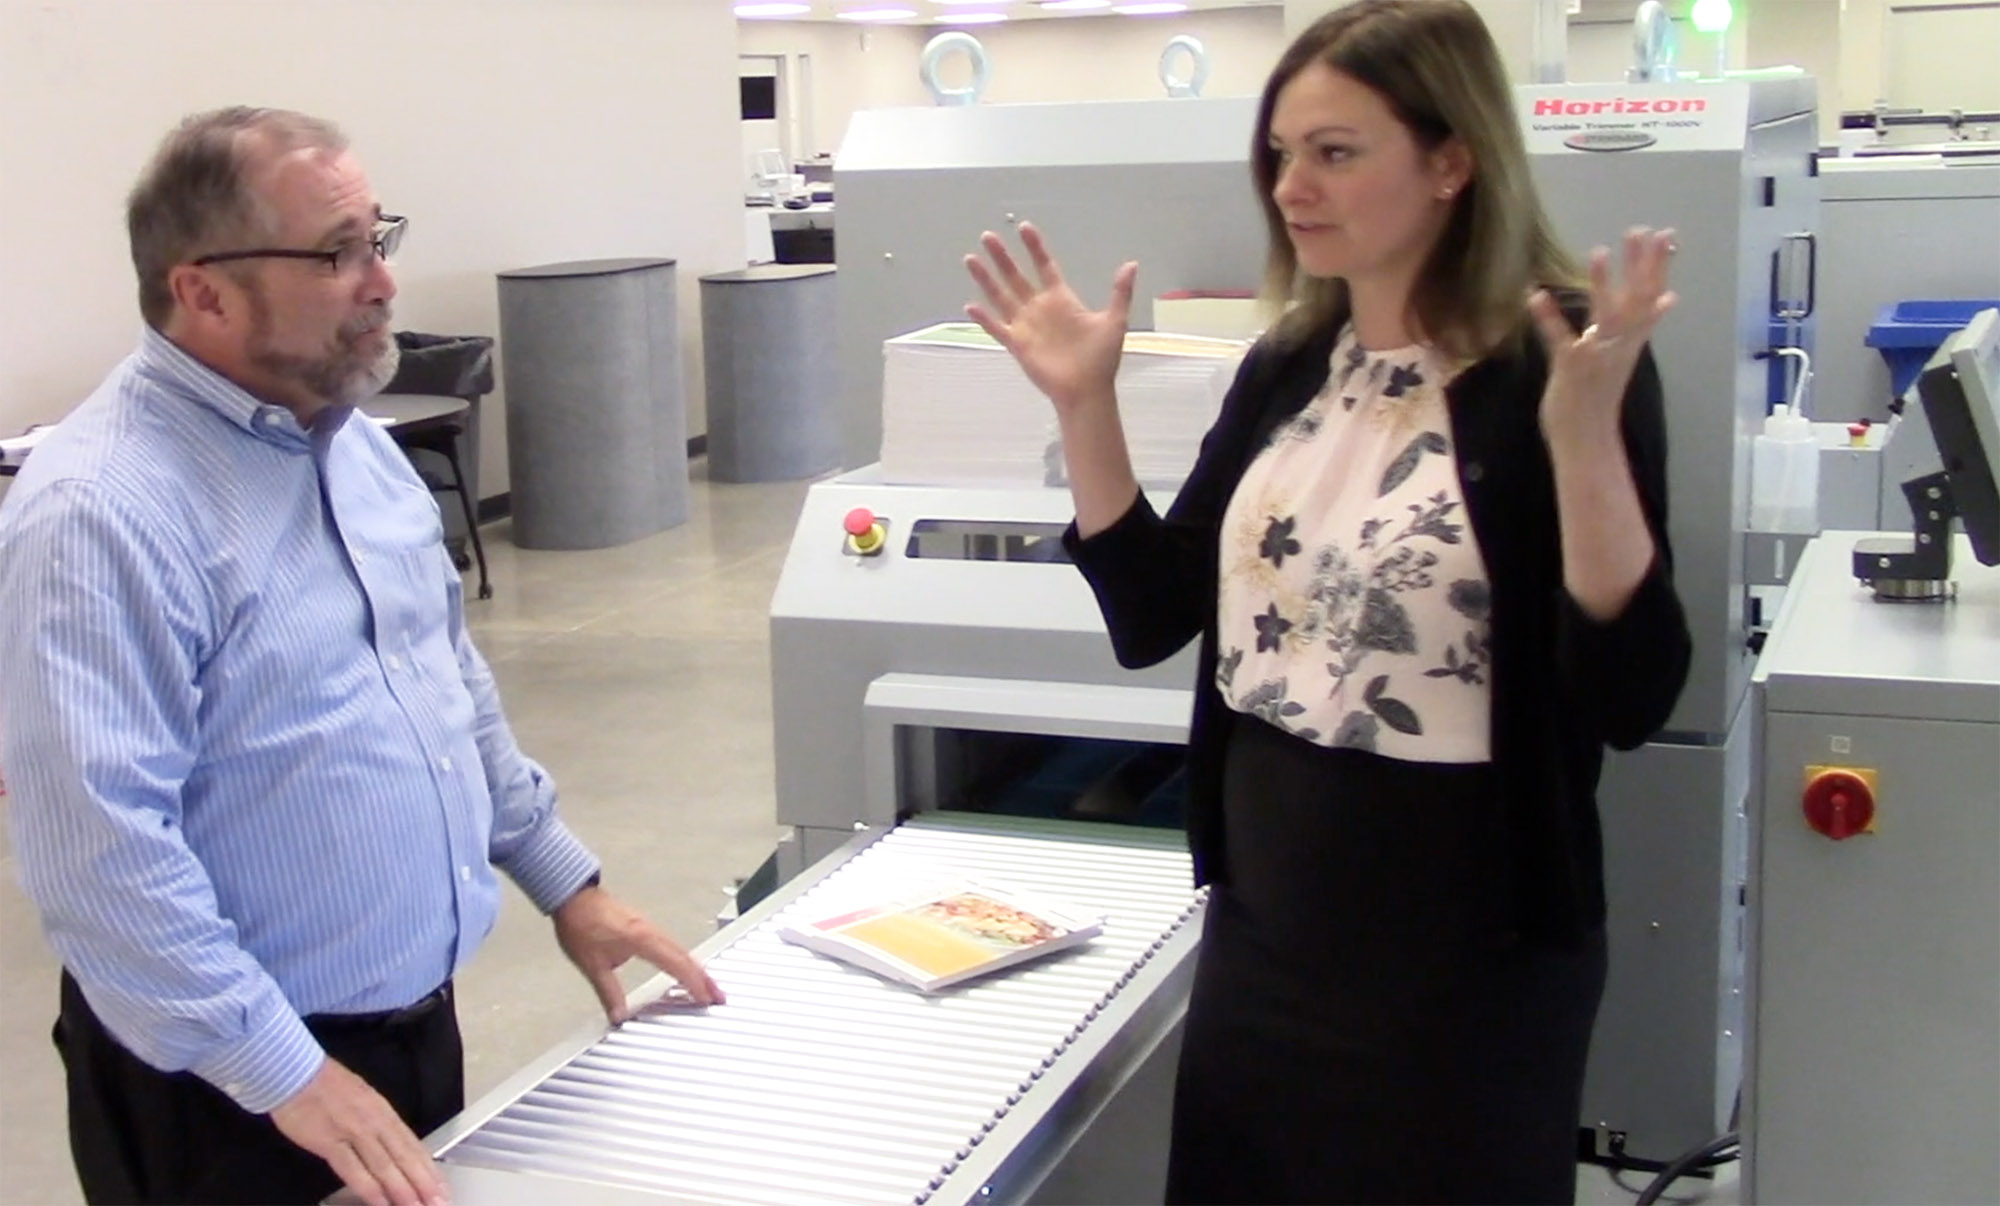 Video preview: Smart Binding System Manufactures Fully-Automated Roll-to-Perfect Bound Variable Books with Ease